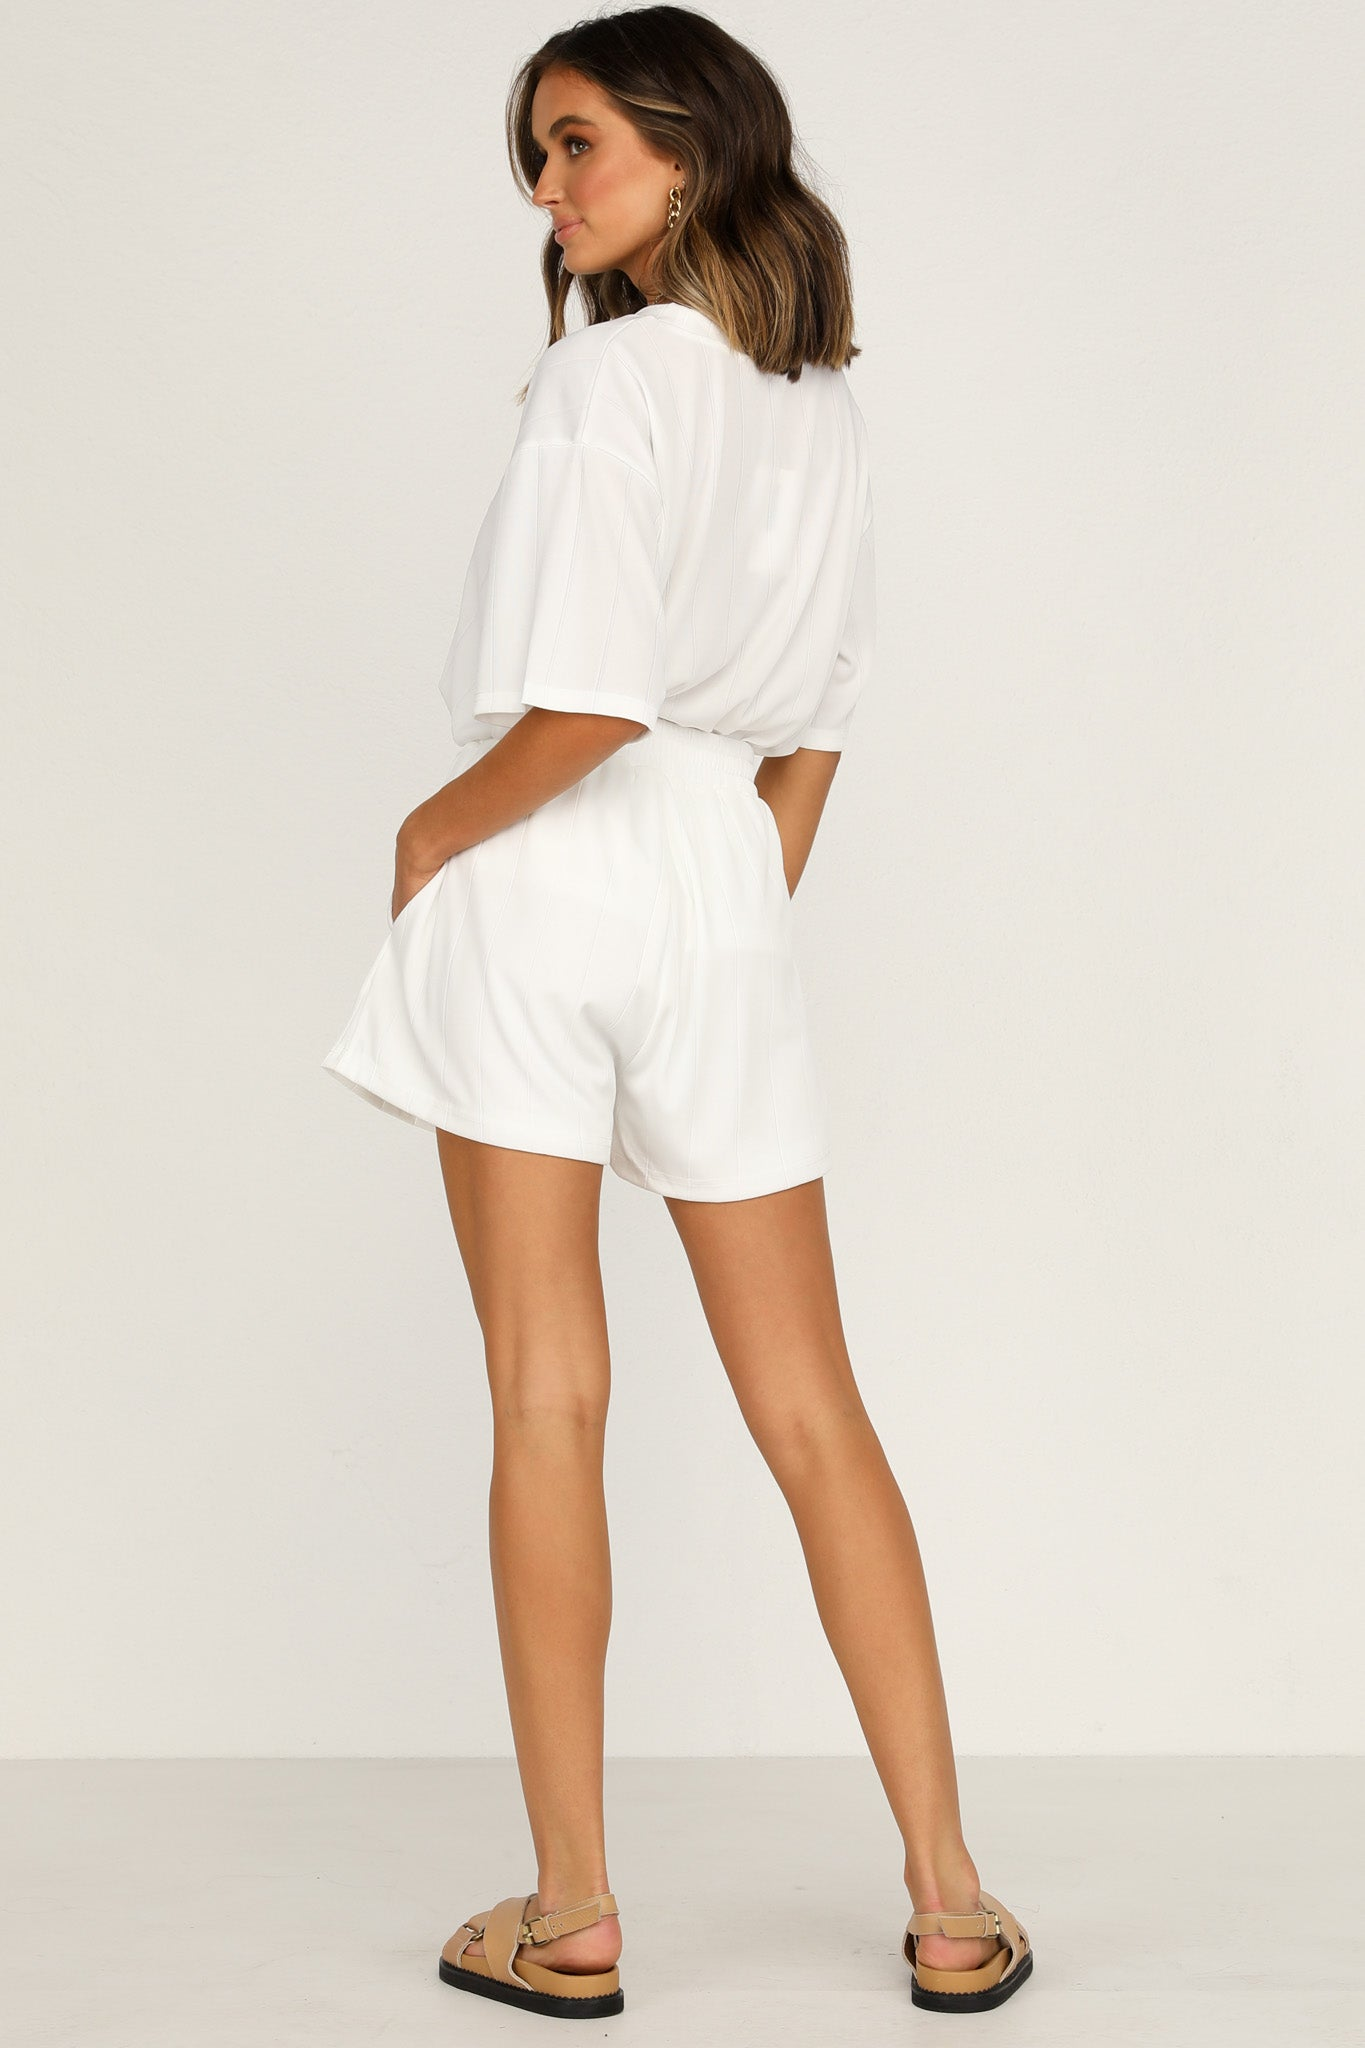 Daisy Duke Shorts (White)